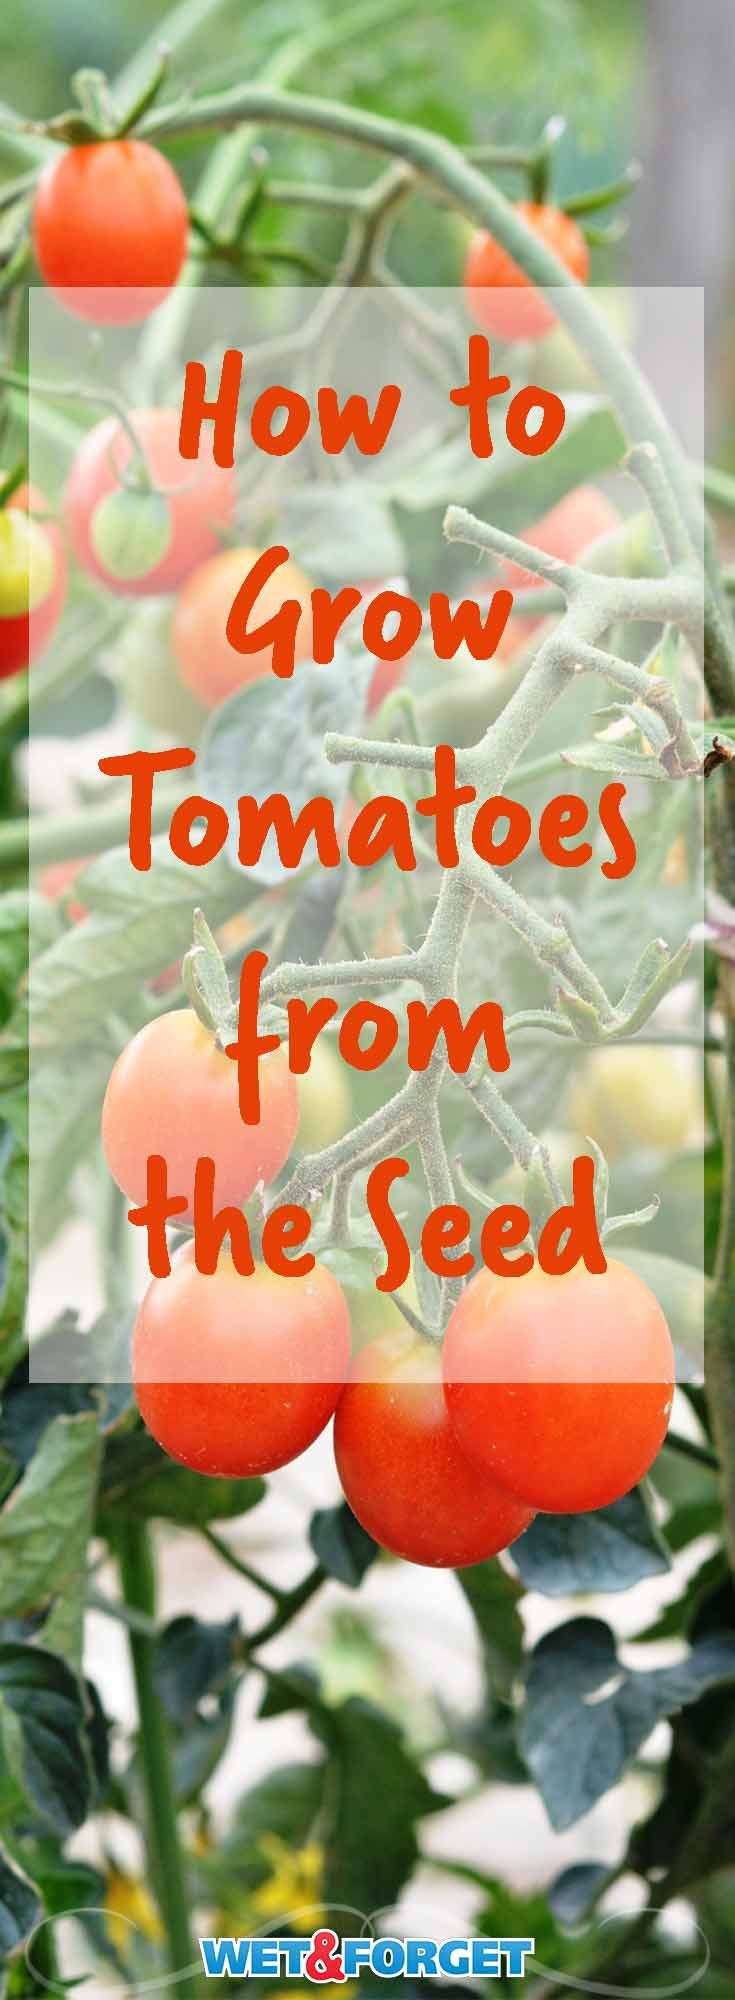 Set yourself up for a fruitful garden by growing tomatoes from the seed! Learn all the quick tips and tricks to save money and grow healthy tomatoes from the seed.